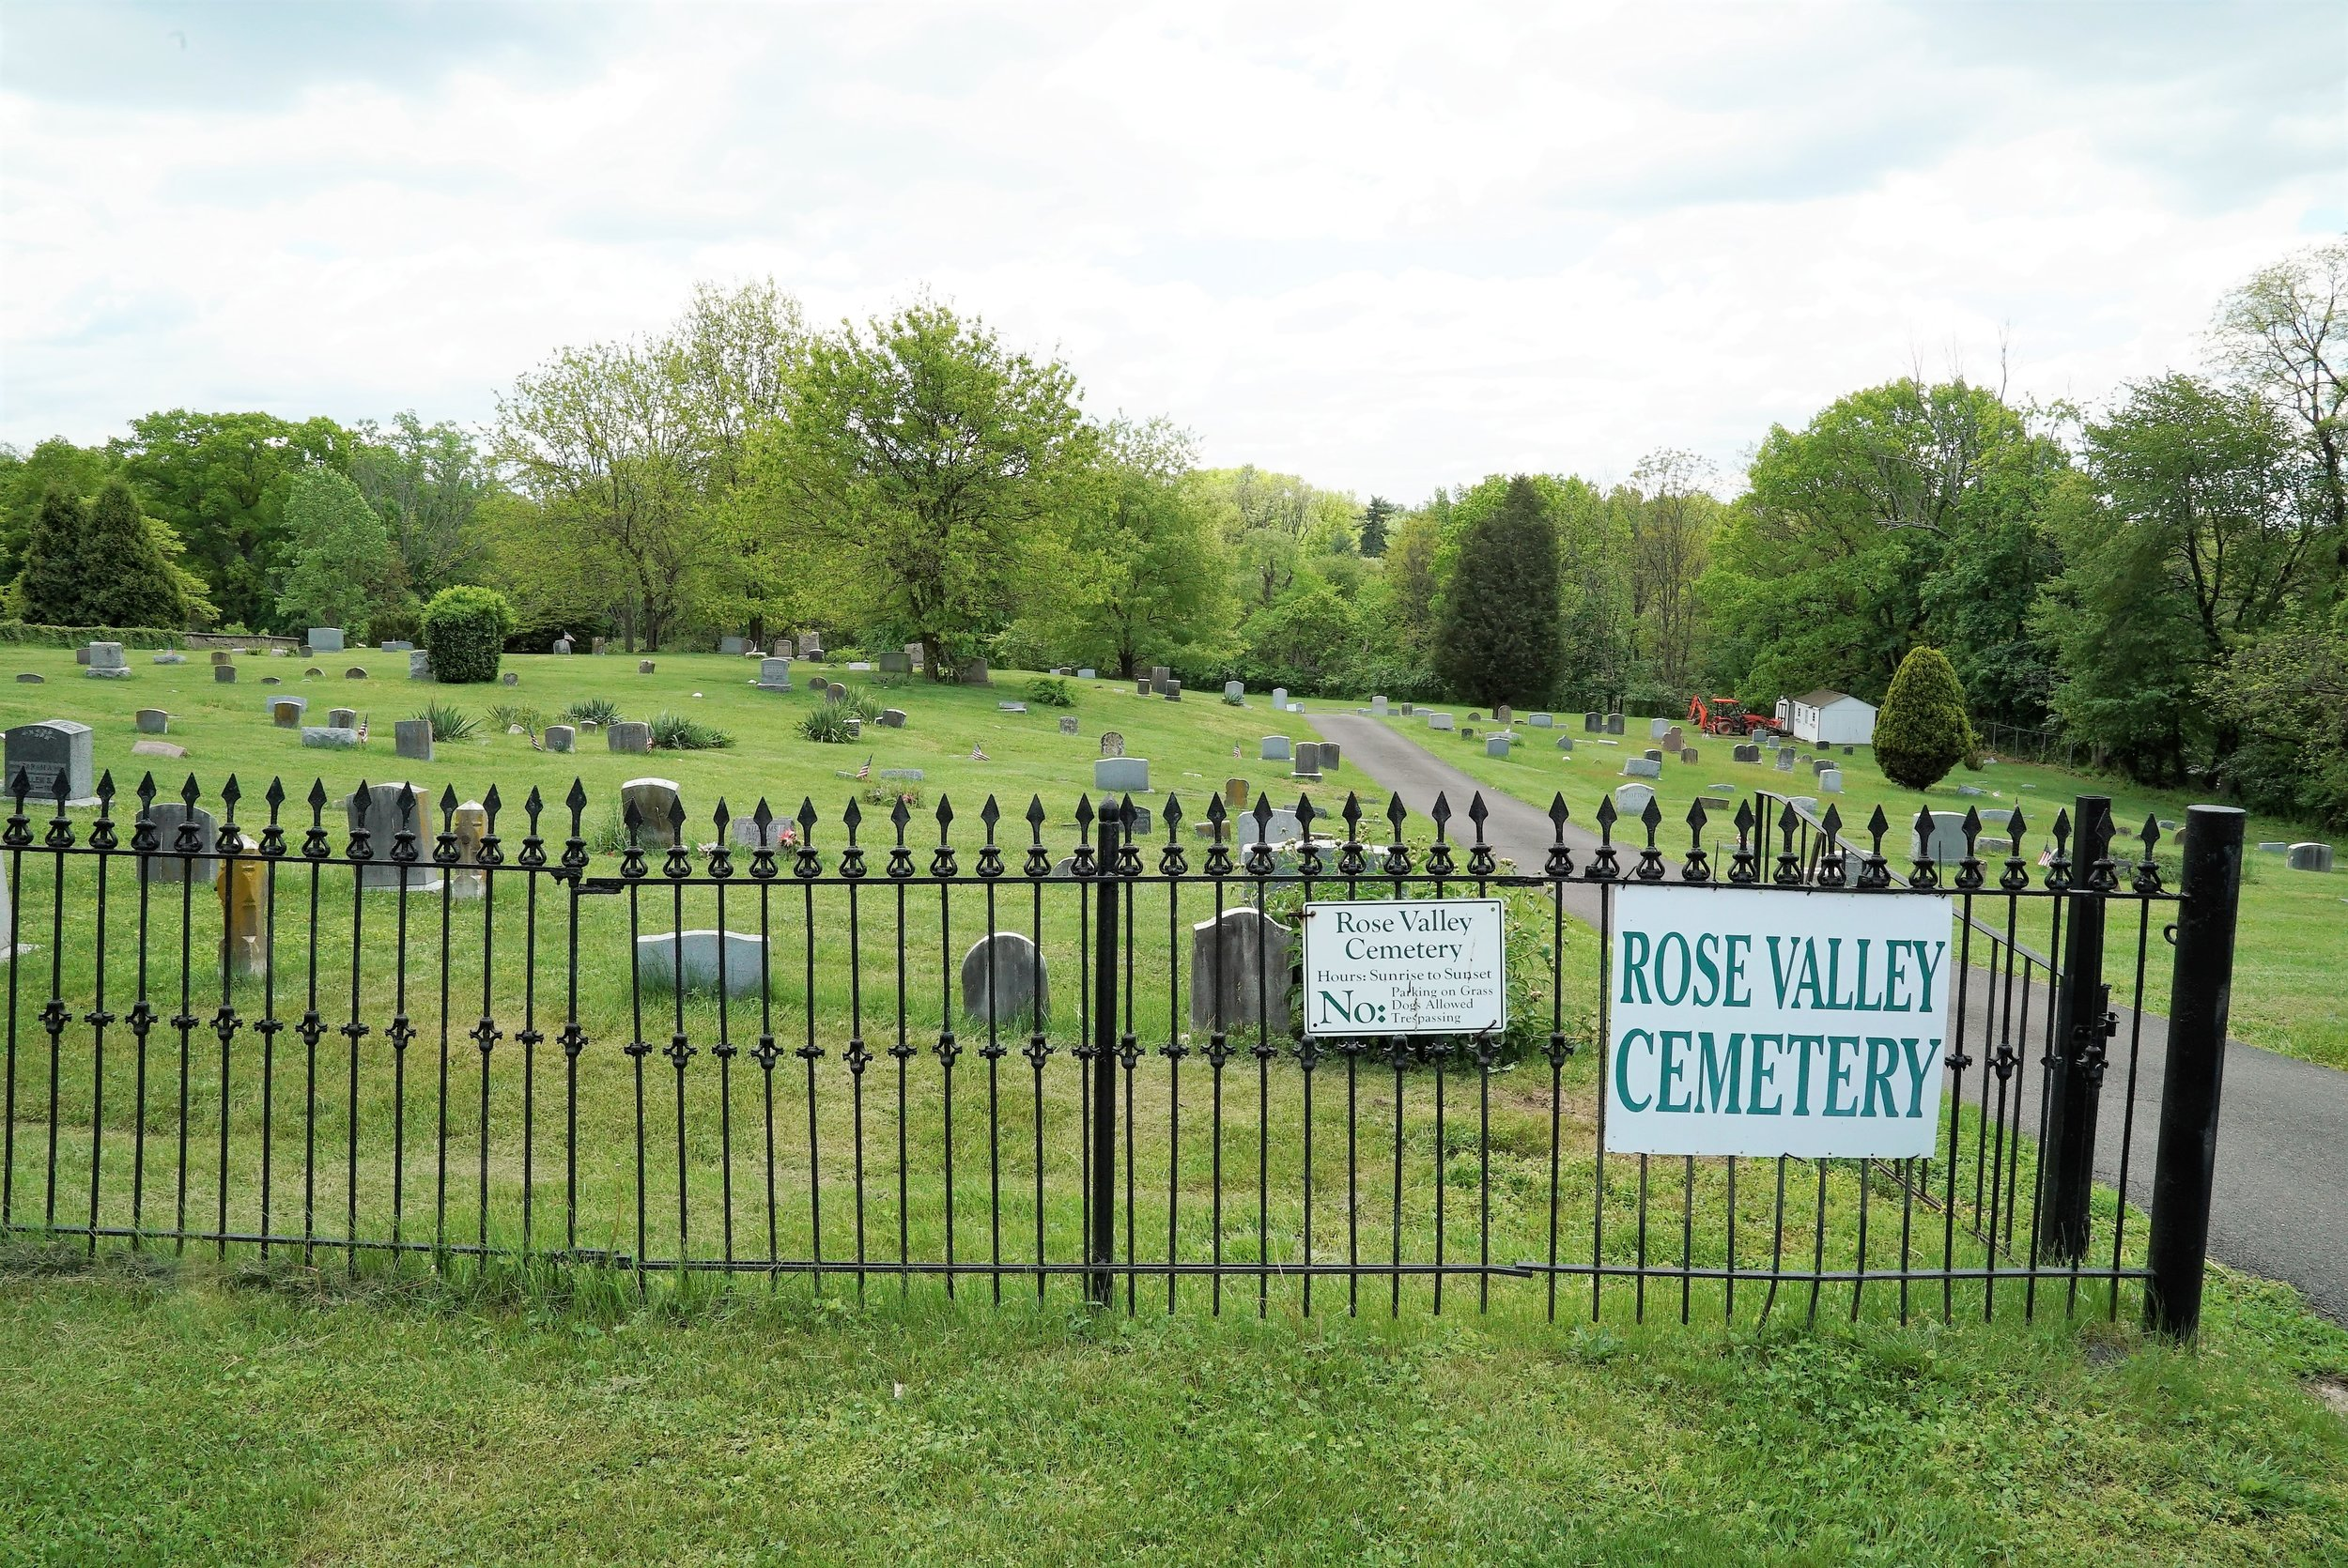 At the entrance to Rose Valley Cemetery. Ambler, Pennsylvania.